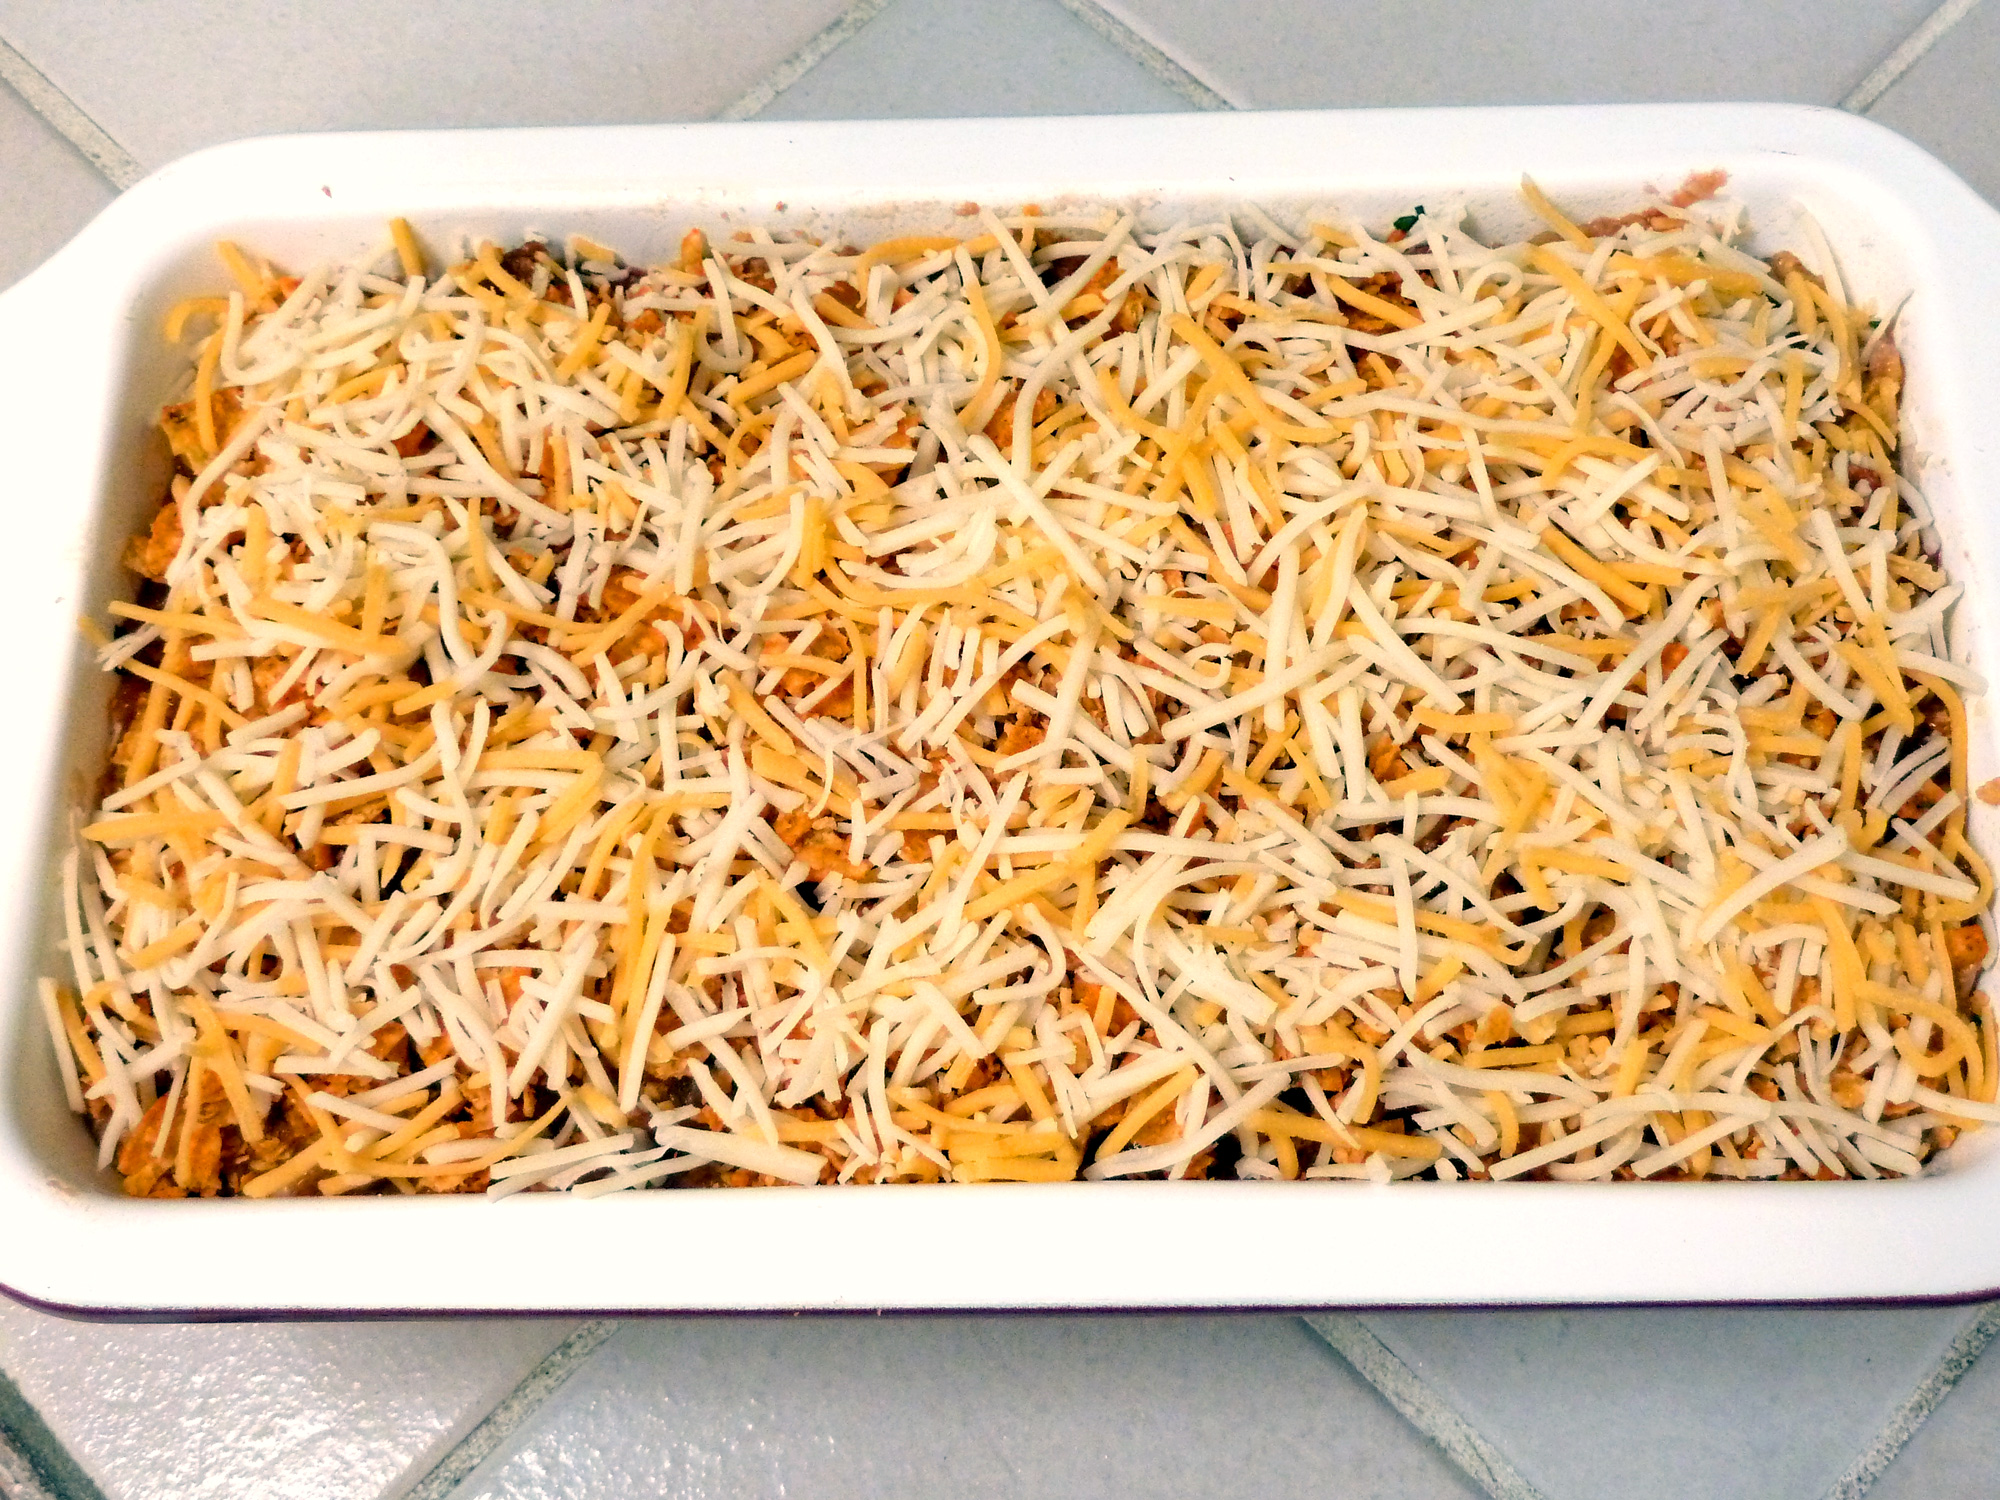 Loco Turkey Meatloaf is topped with salsa, cheese, and more chips. It's ready to go into the oven.